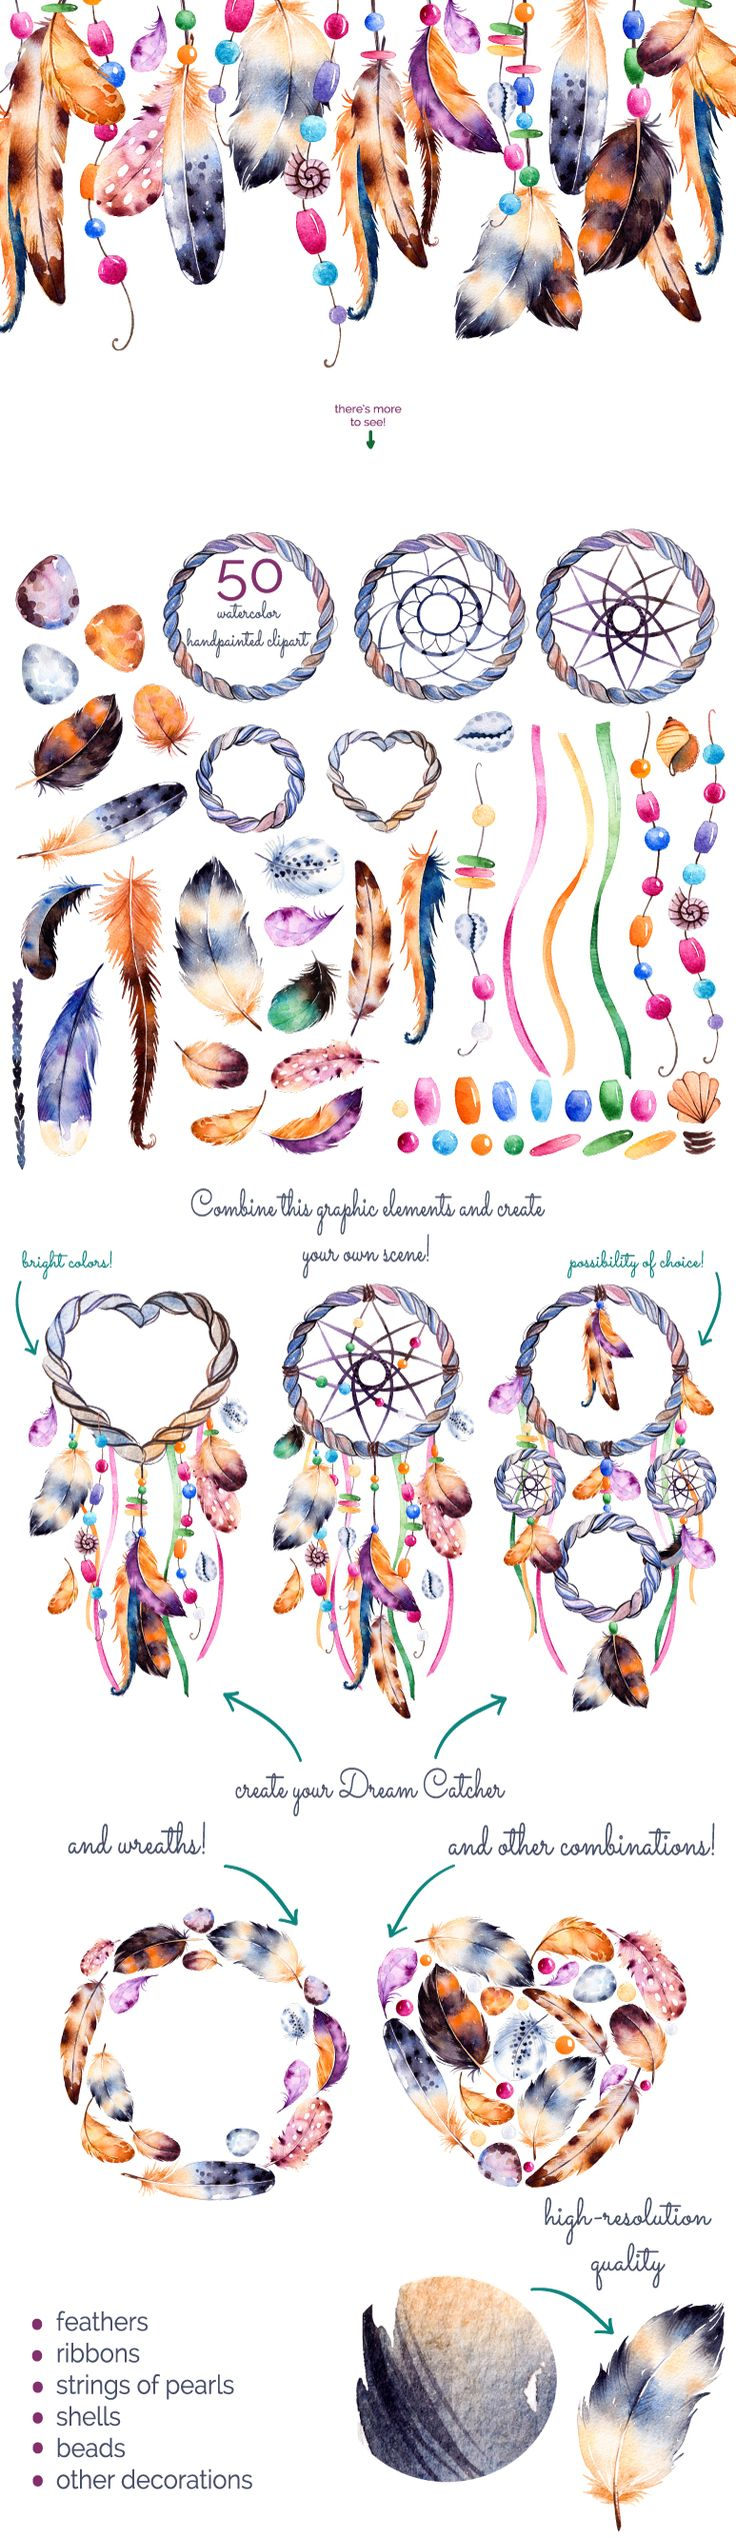 Feathers and dream catchers - Illustrations - 2